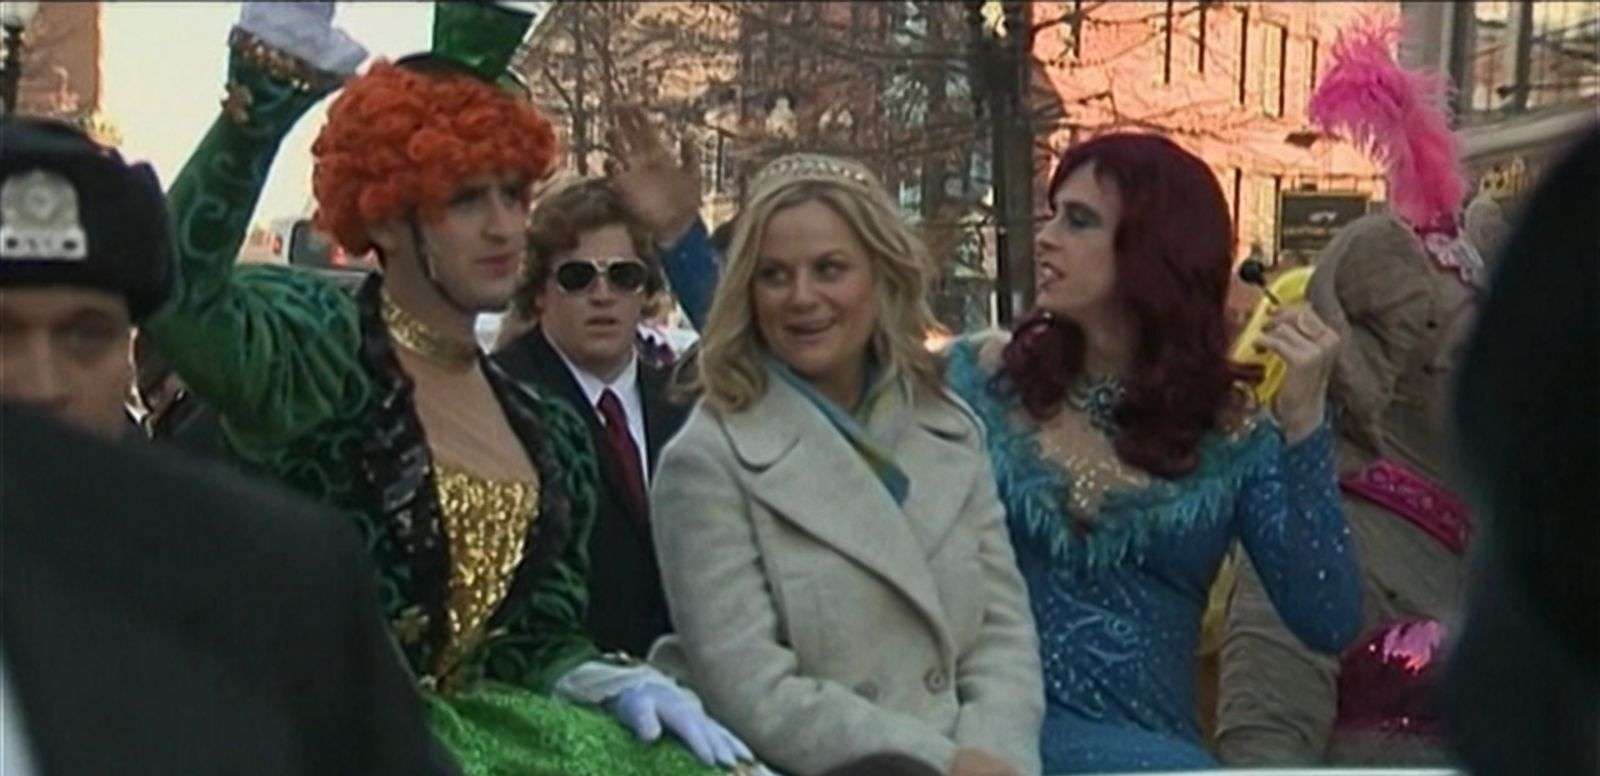 VIDEO: The comedian celebrated her Woman of the Year Award by parading through Harvard Square with members of Hasty Pudding Theatricals dressed in drag.